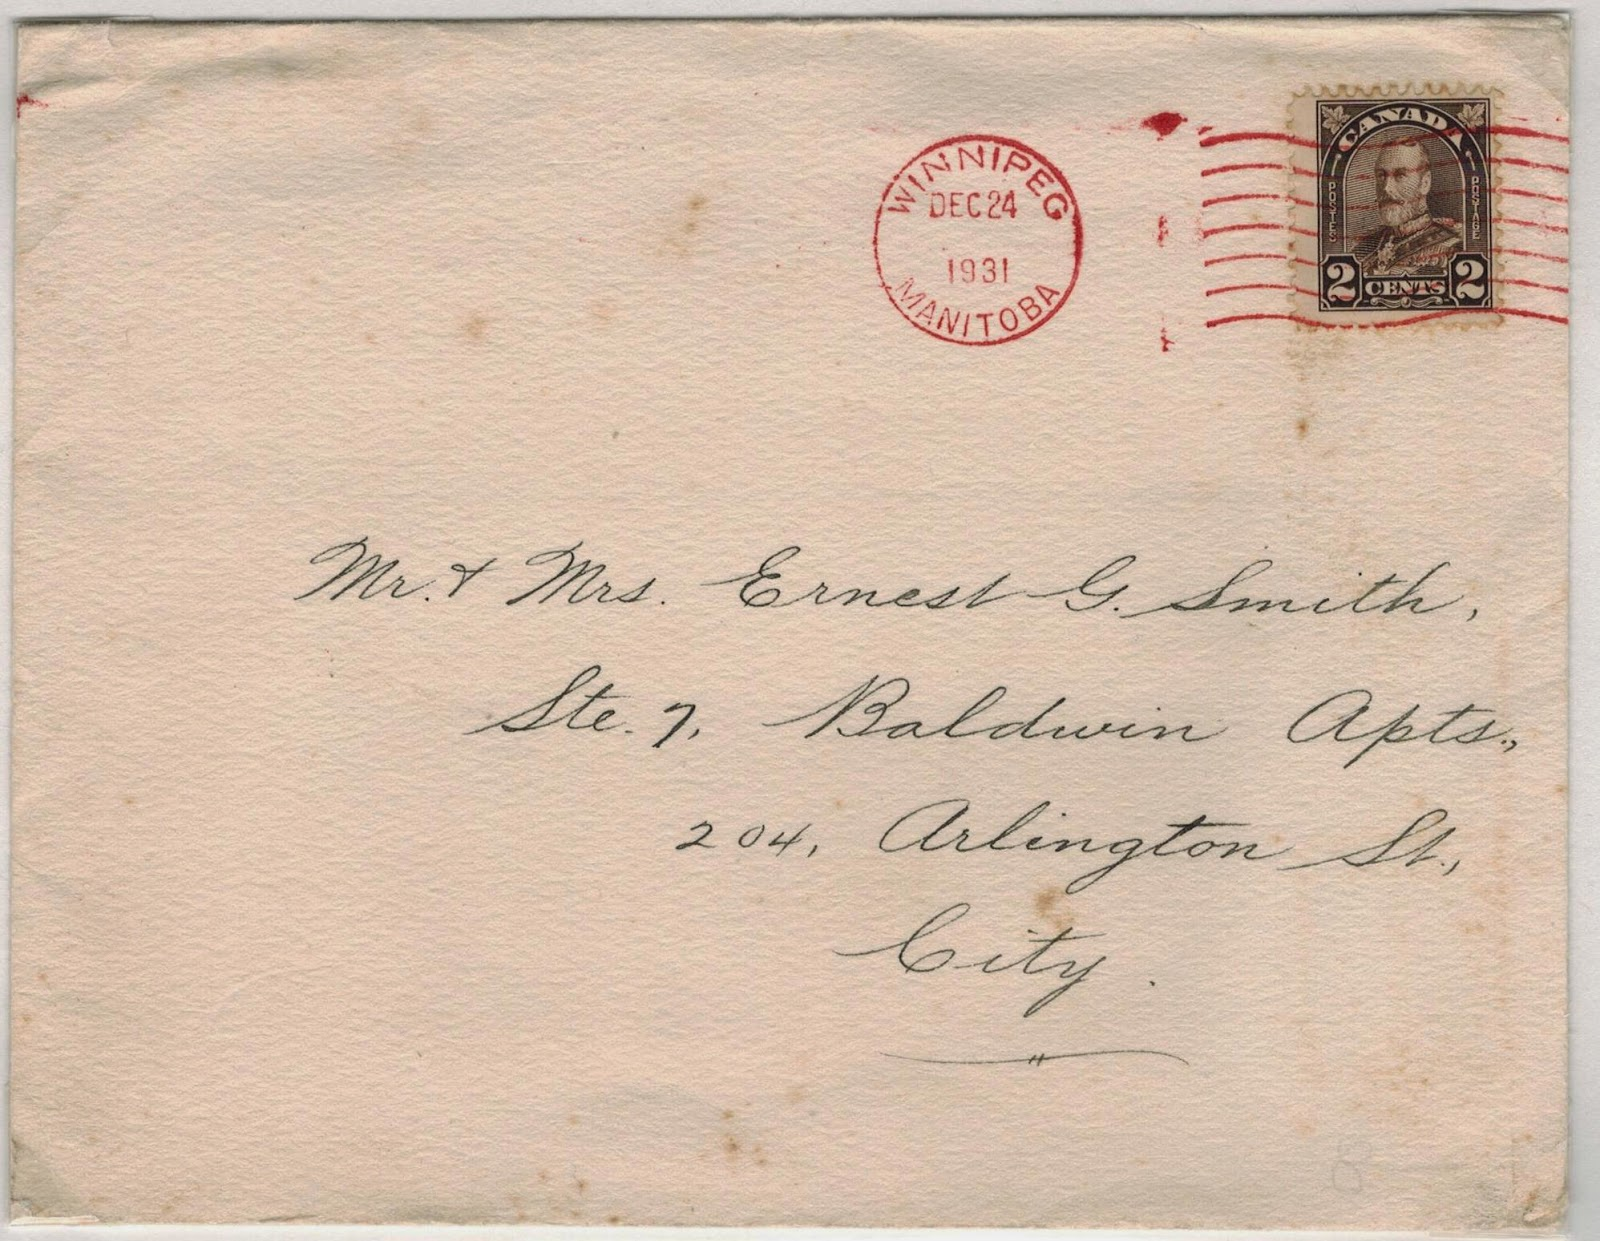 Postal History Corner 2 Canada Domestic Local Letter Rates 1851 1968,Longhorn Parmesan Crusted Chicken Nutrition Recipe